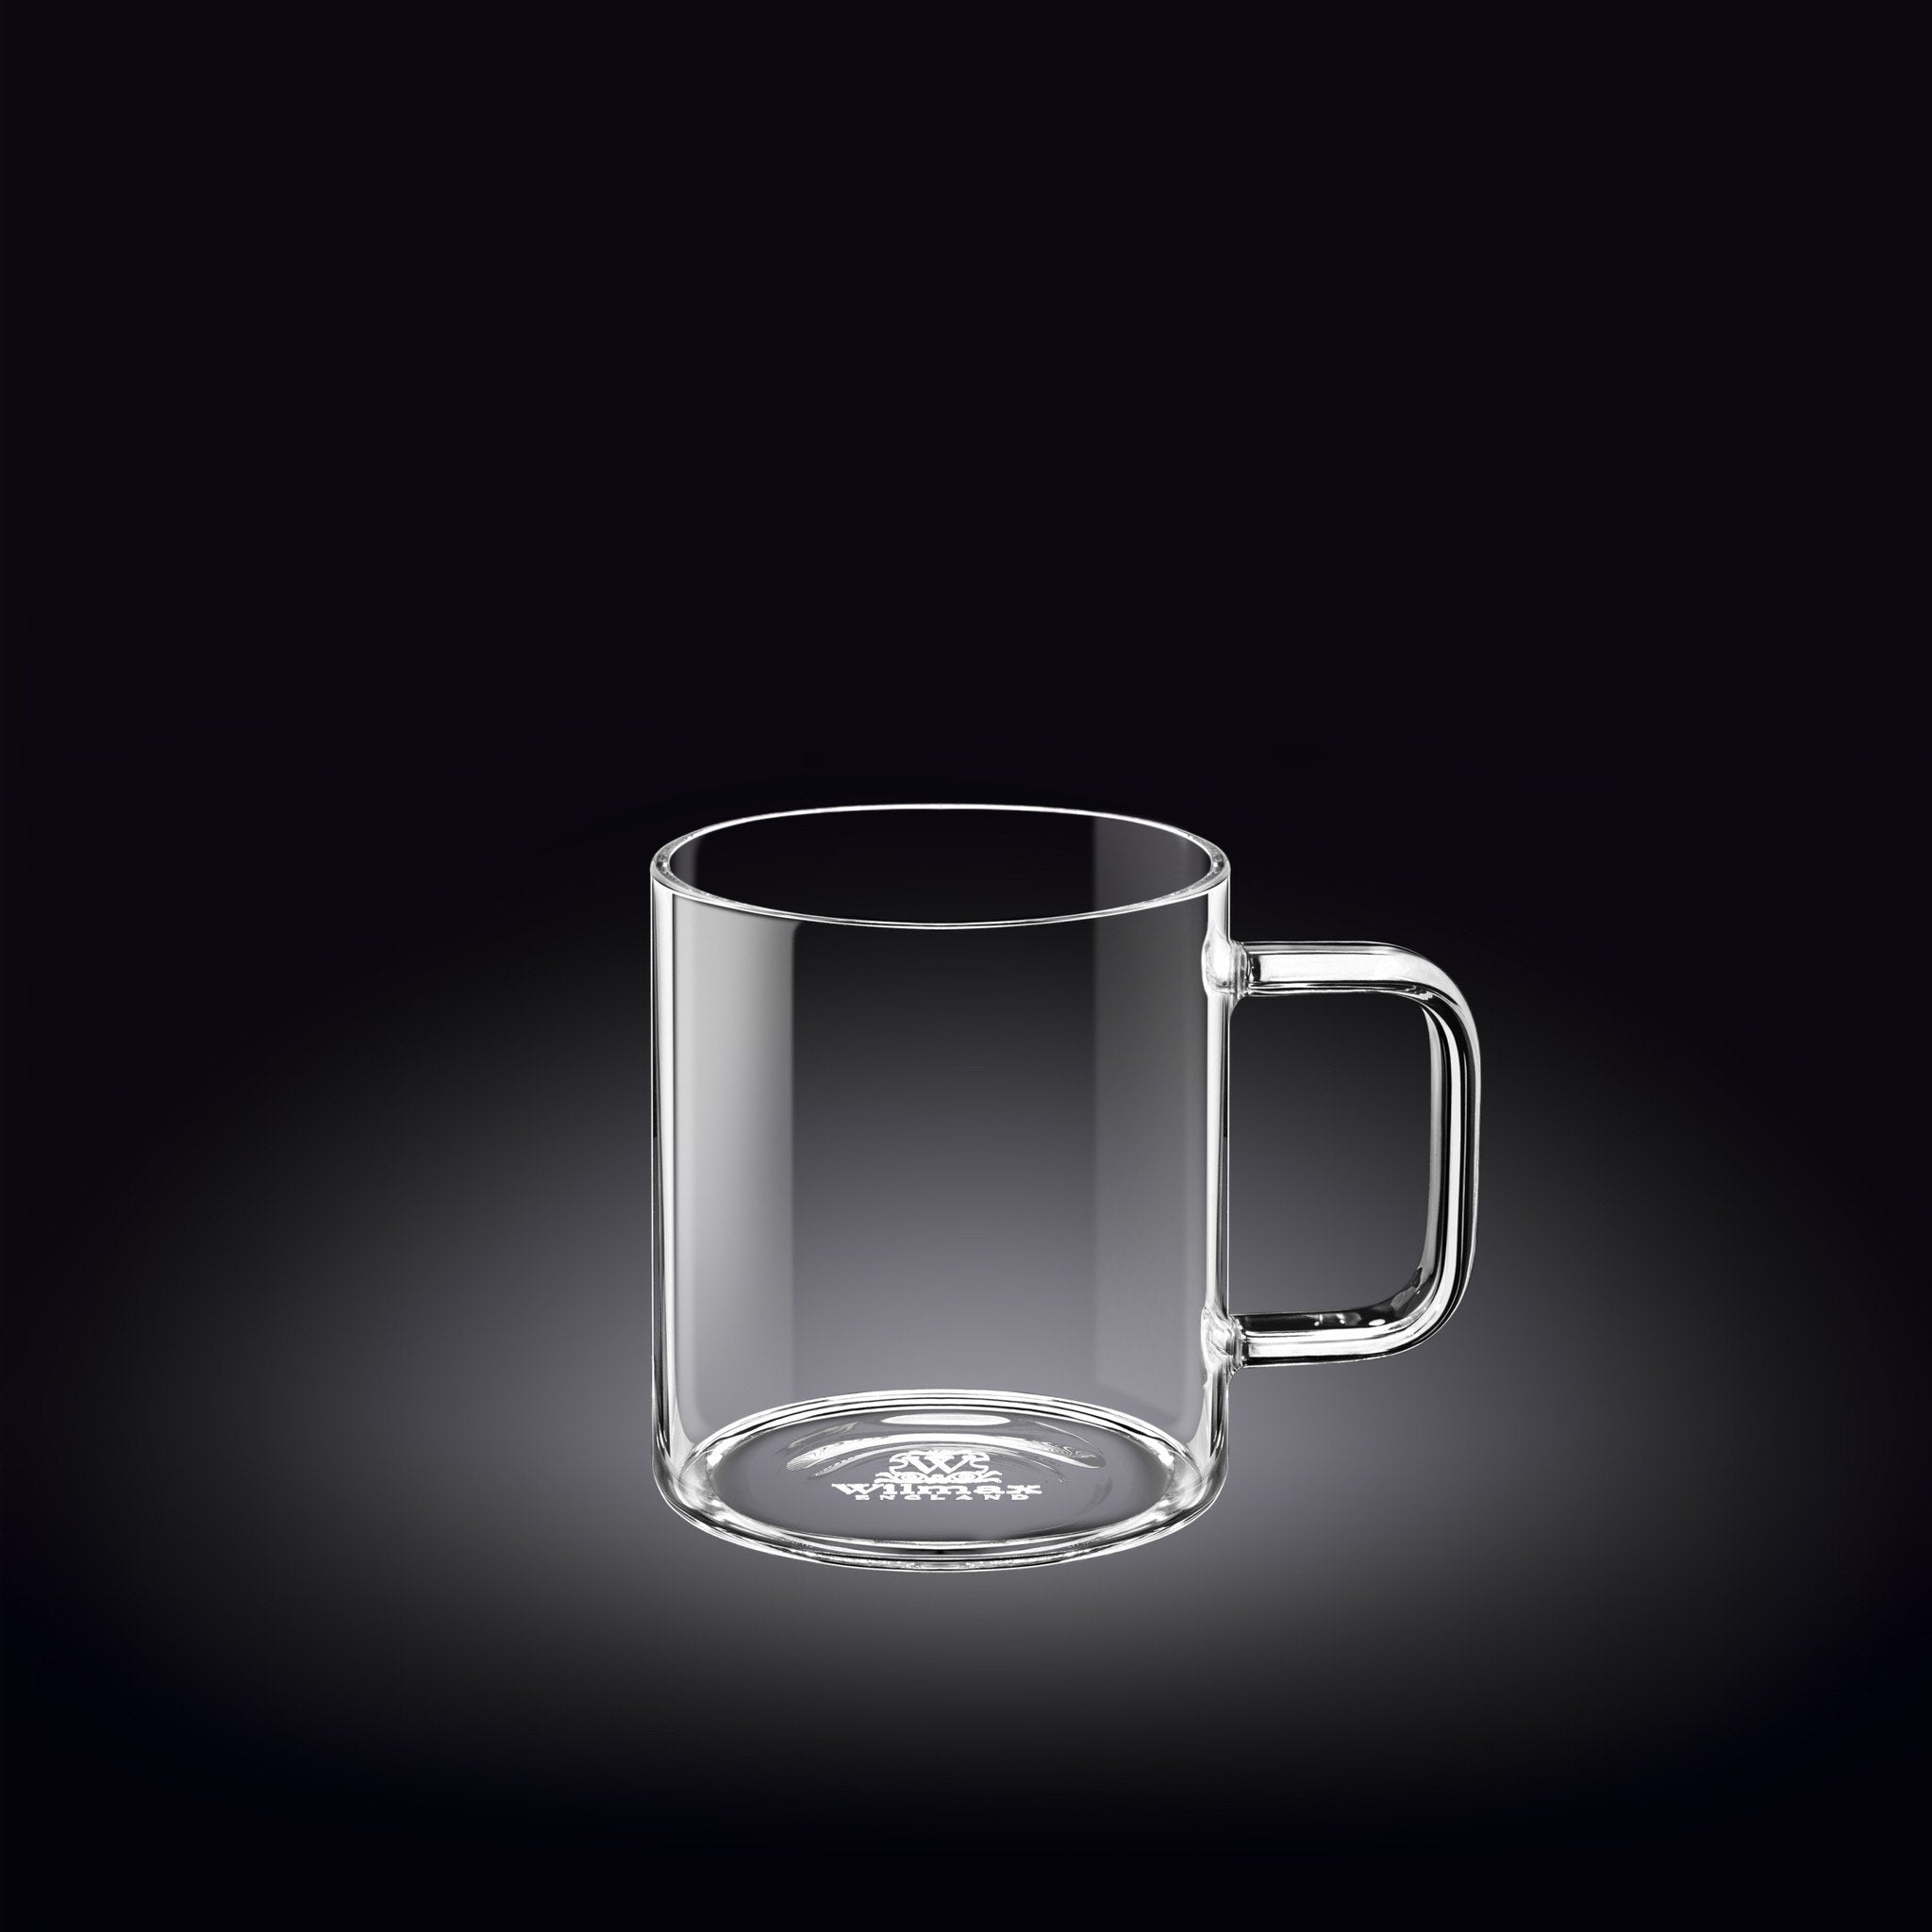 THERMO GLASS CUP 7 OZ | 200 ML WL-888604/A